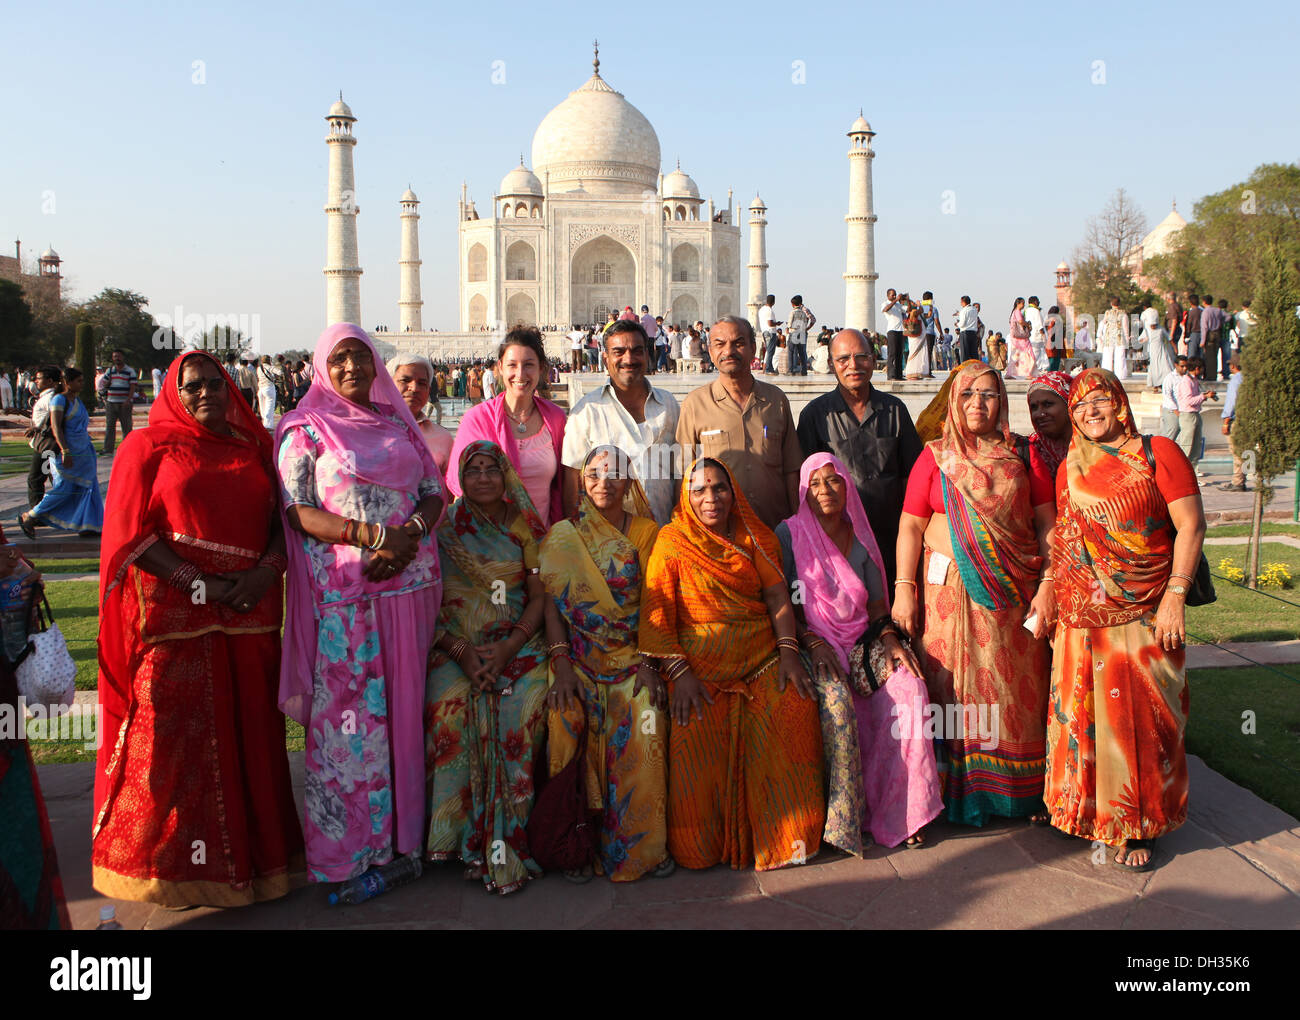 Group of Indian tourists posing in front of the Taj Mahal, Agra, Uttar Pradesh, India, Asia - Stock Image